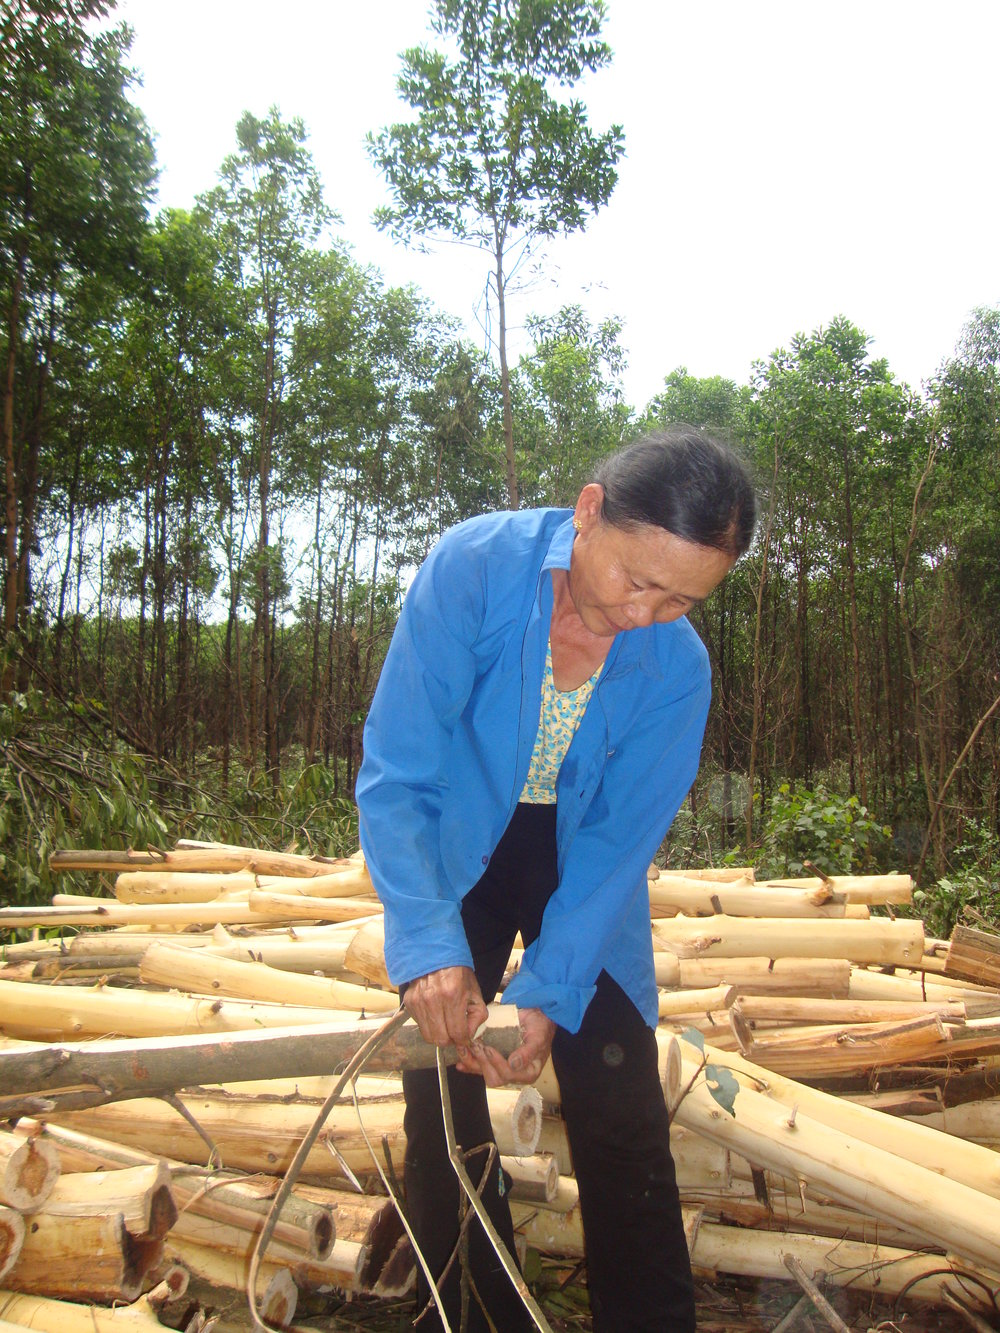 A Vietnamese woman is peeling felled Acacia trees